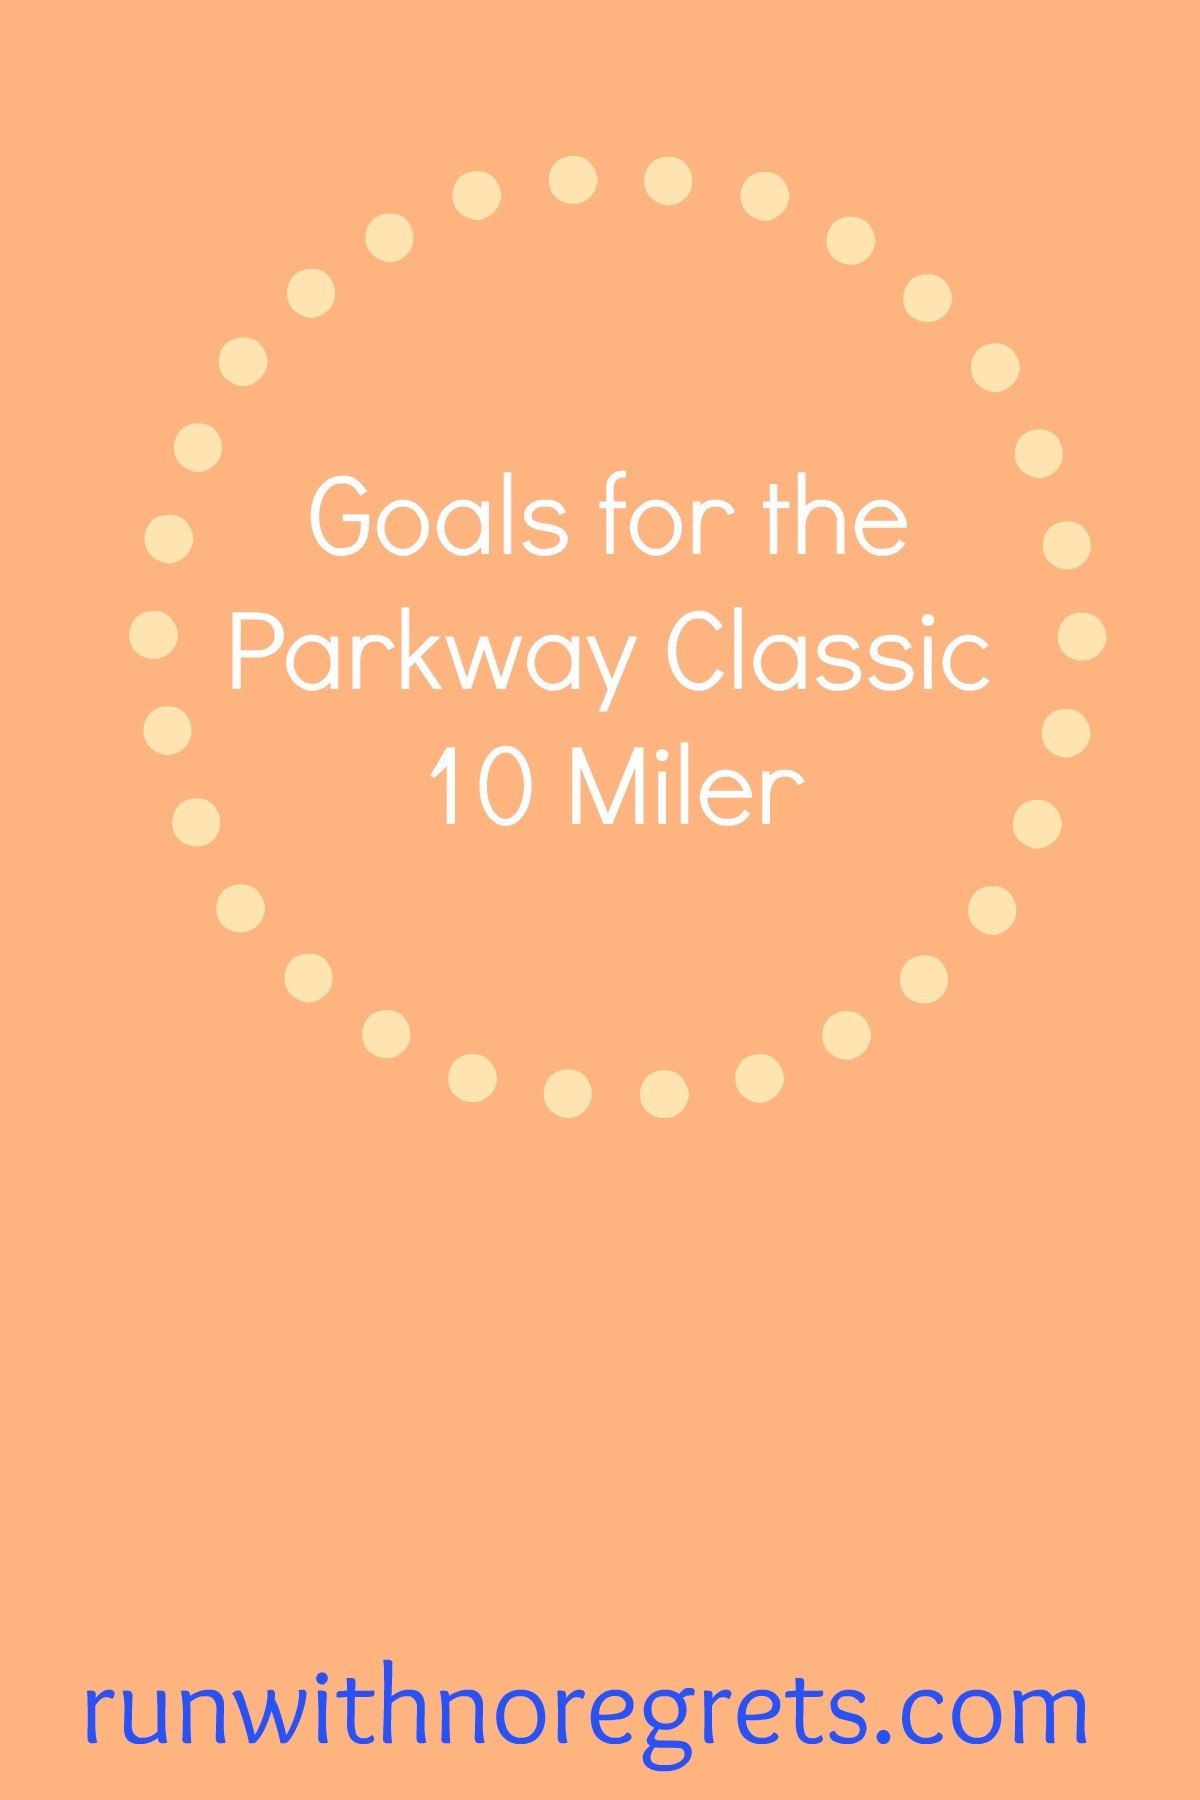 This weekend I'm running the George Washington Parkway Classic 10 Mile race in Alexandria, VA - I'm so excited! Check out my goals for the race and more running talk at runwithnoregrets.com!